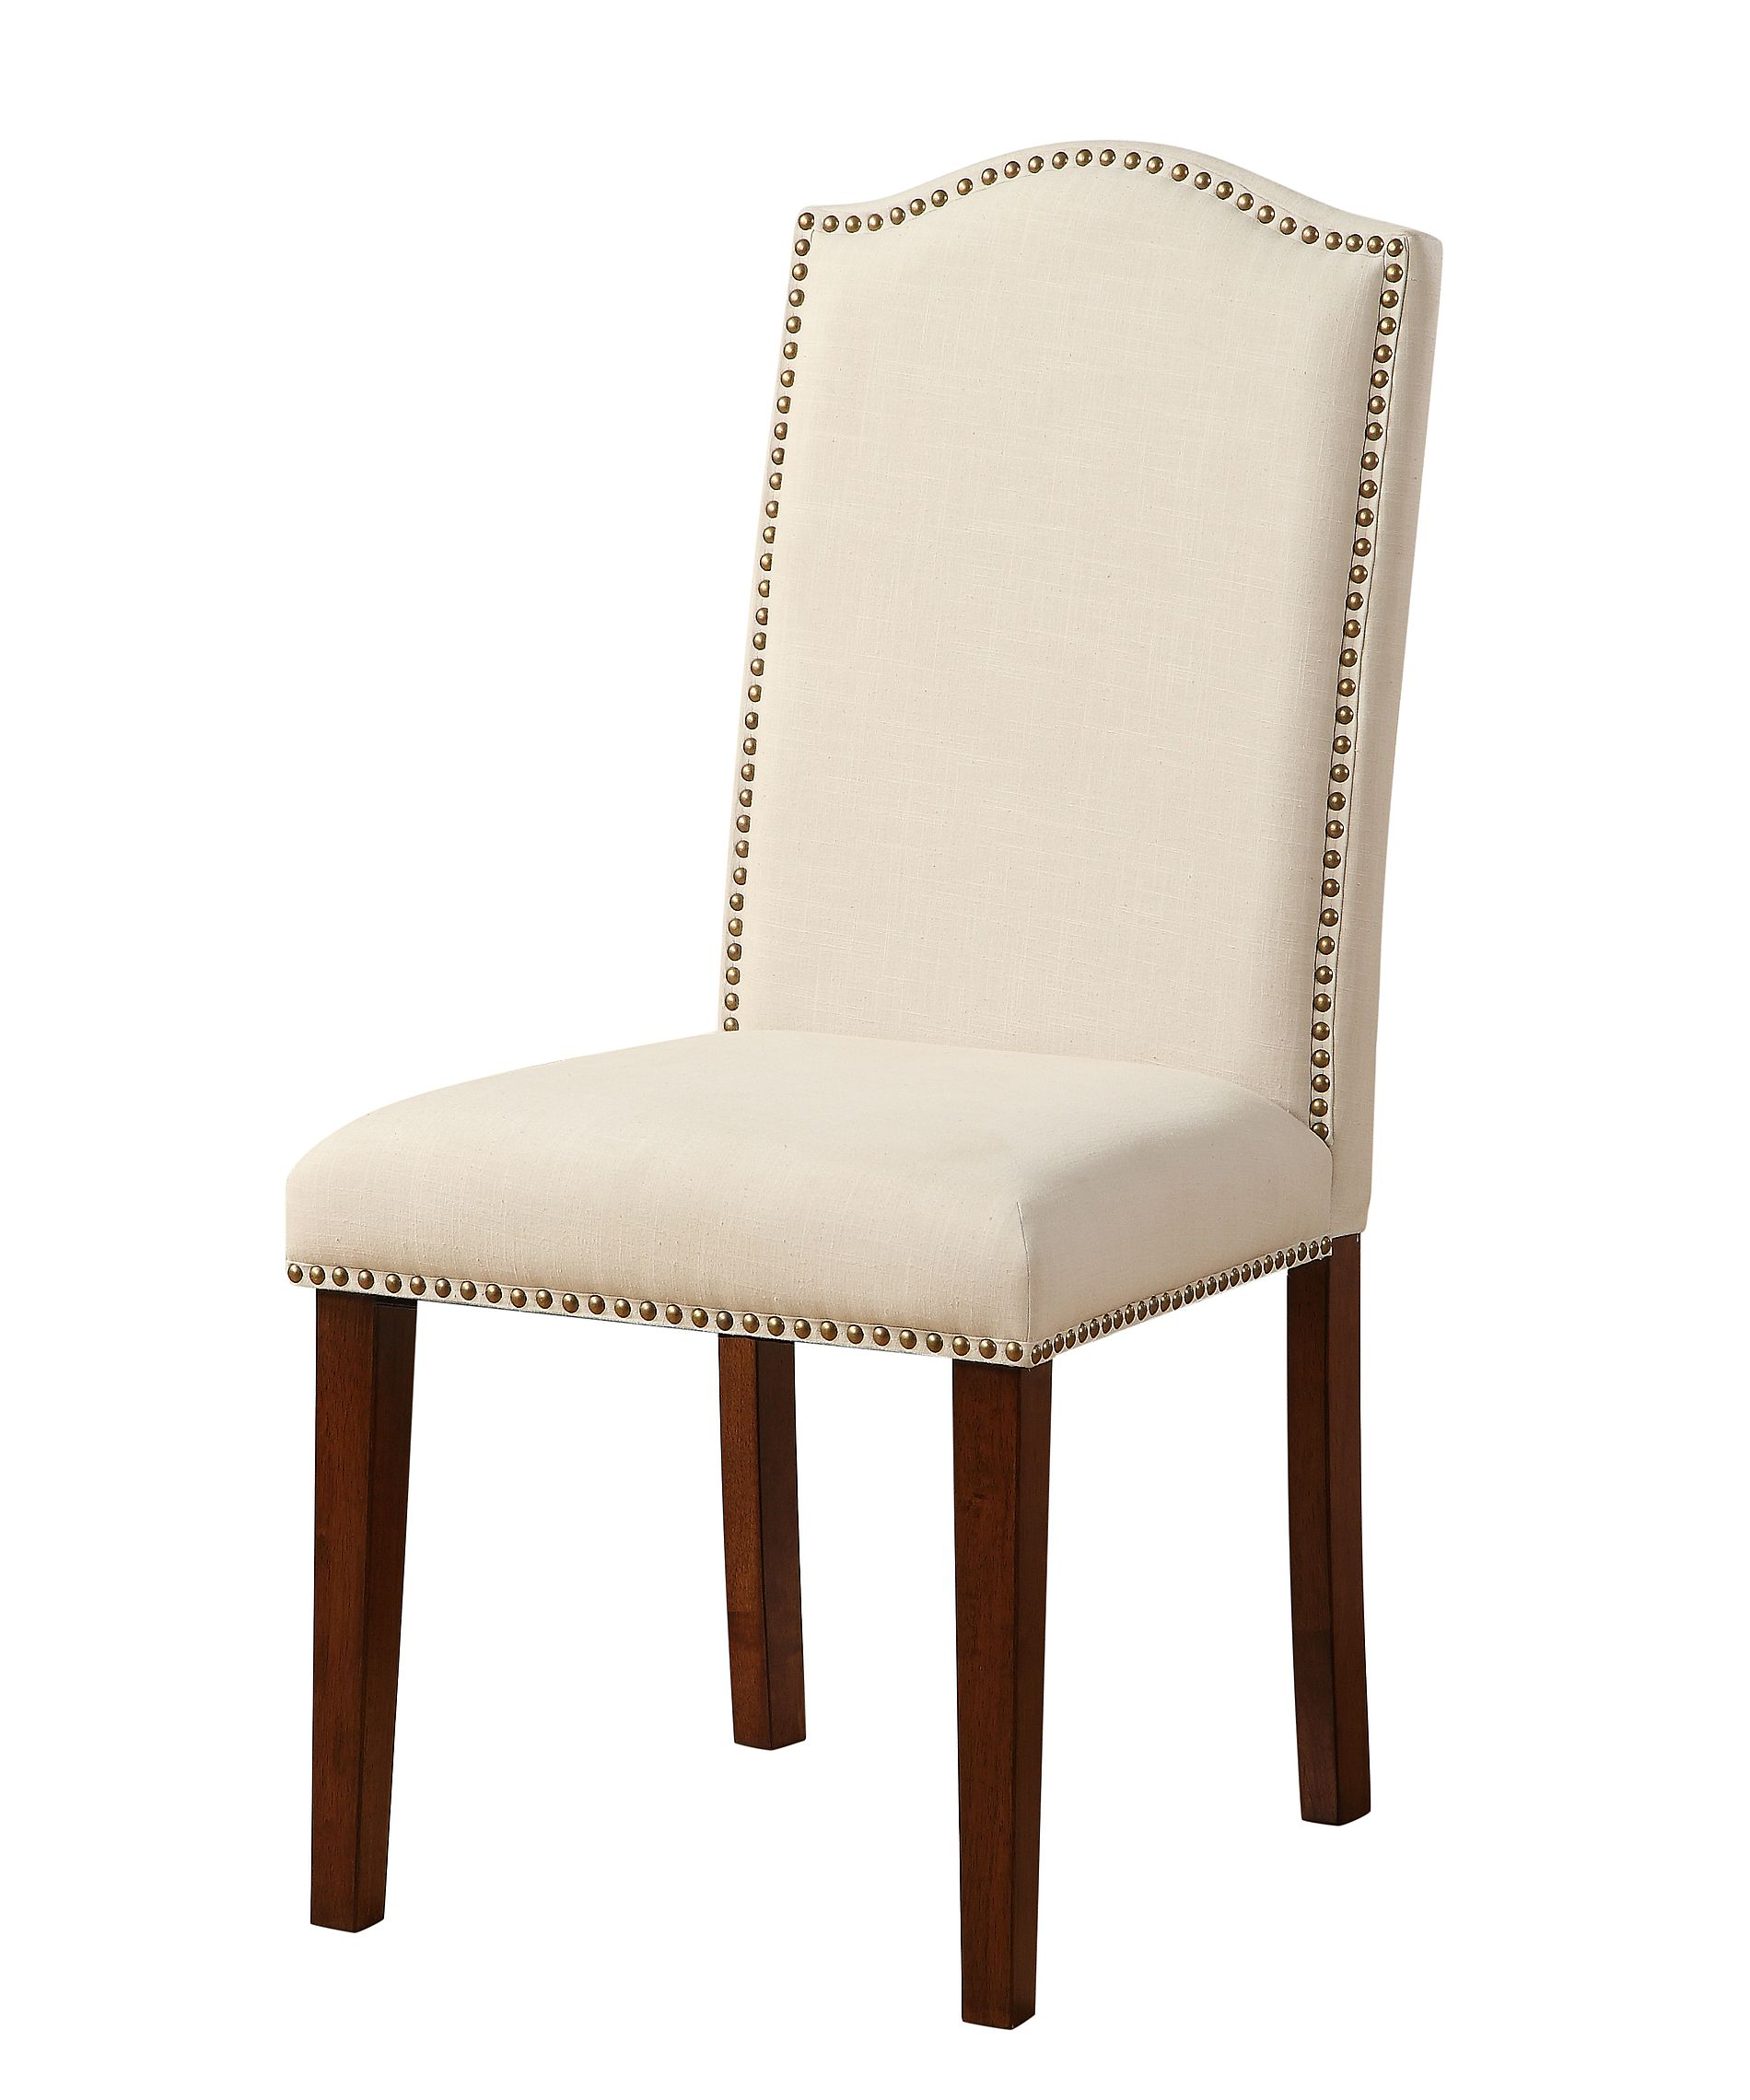 Kmart Dining Chairs Imported Dining Chair Kmart